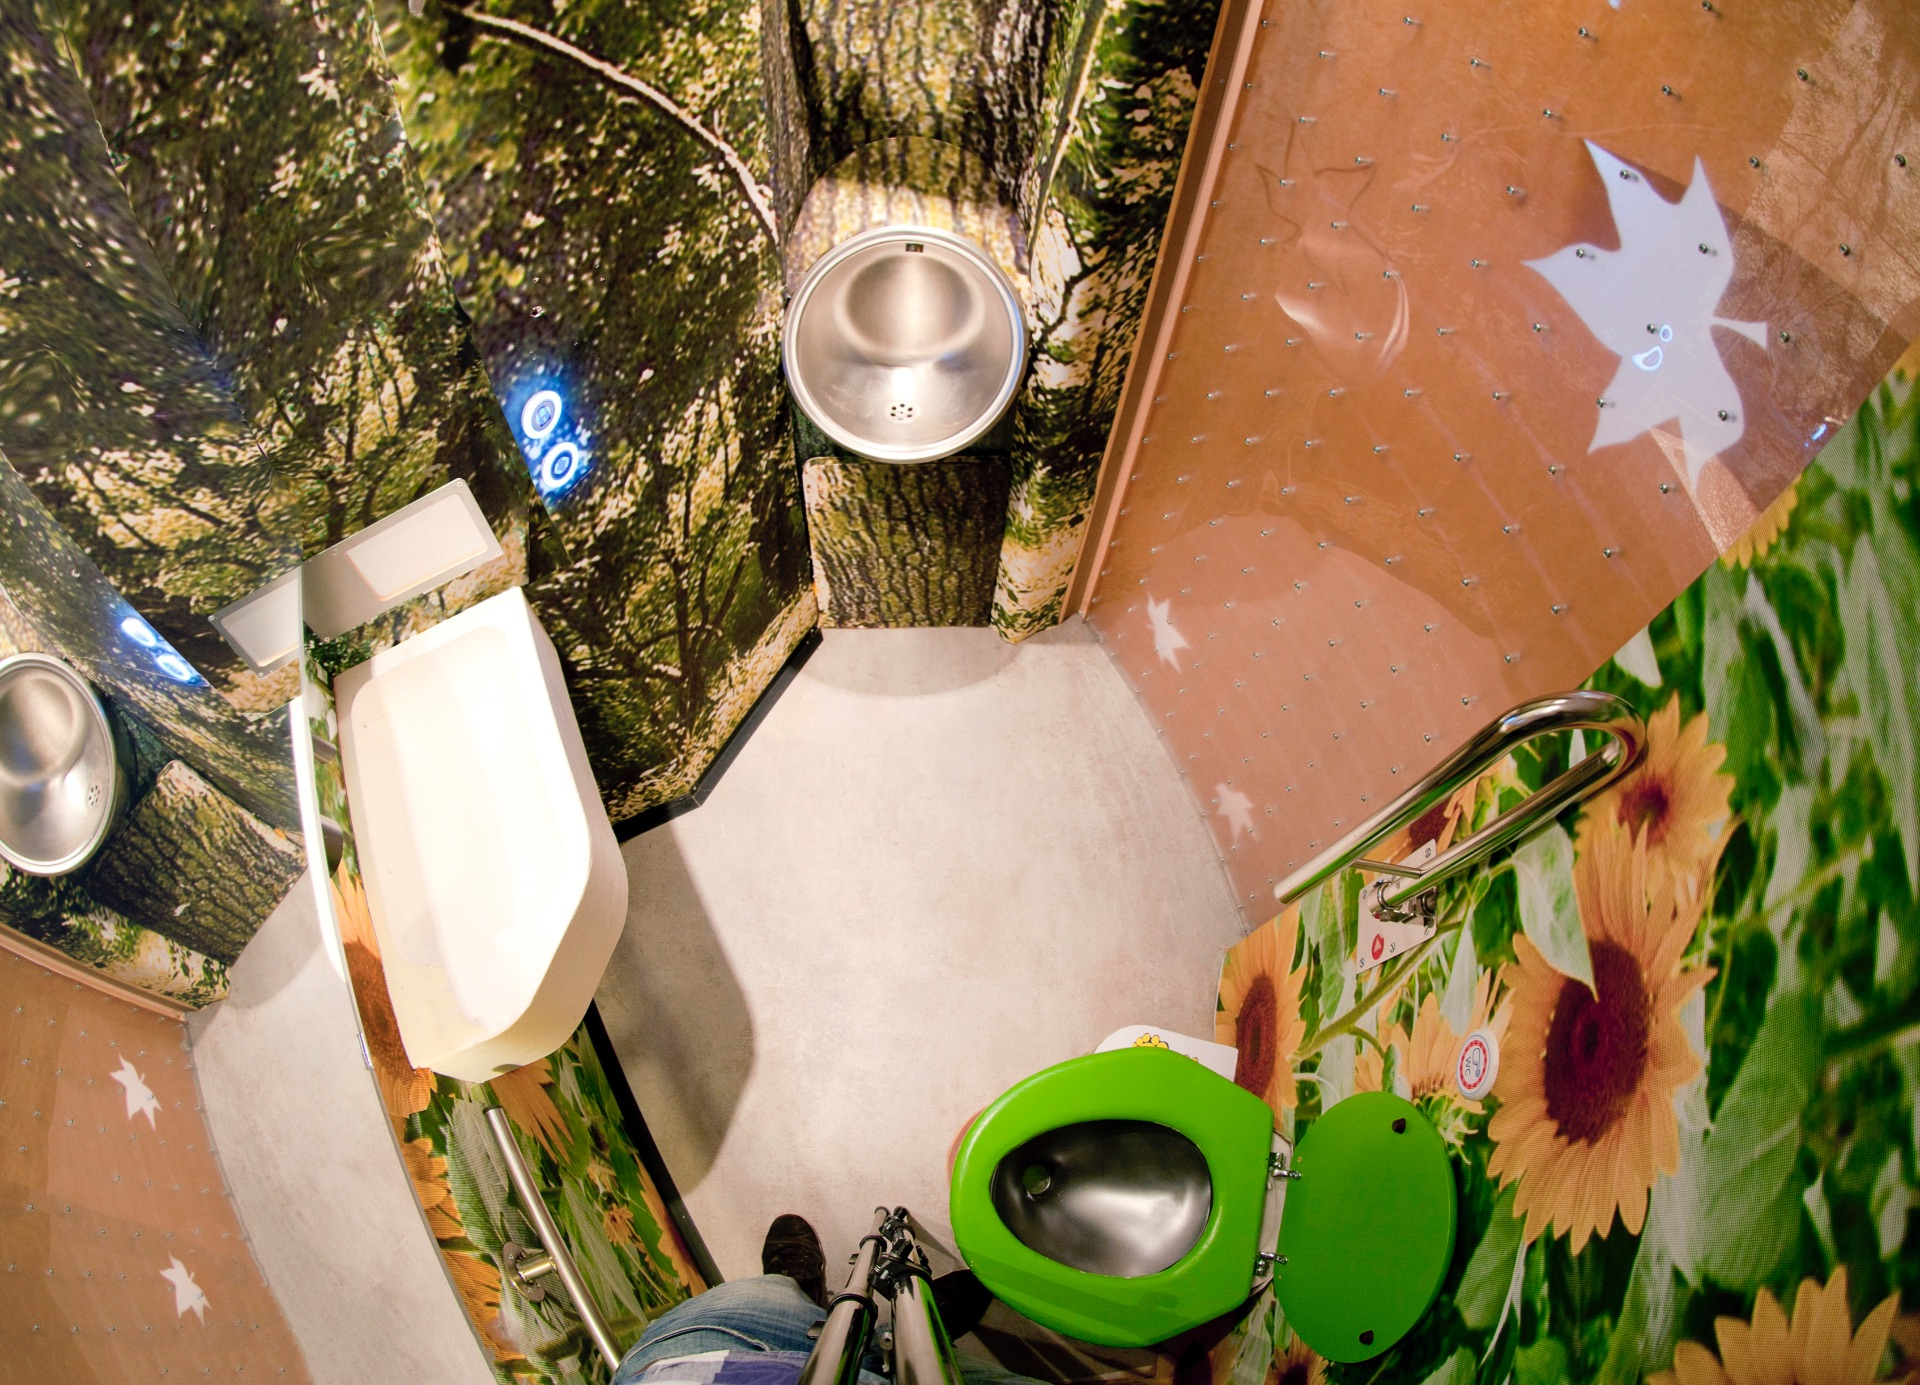 Automatic accessible train toilet with wall super-graphics of trees and flowers